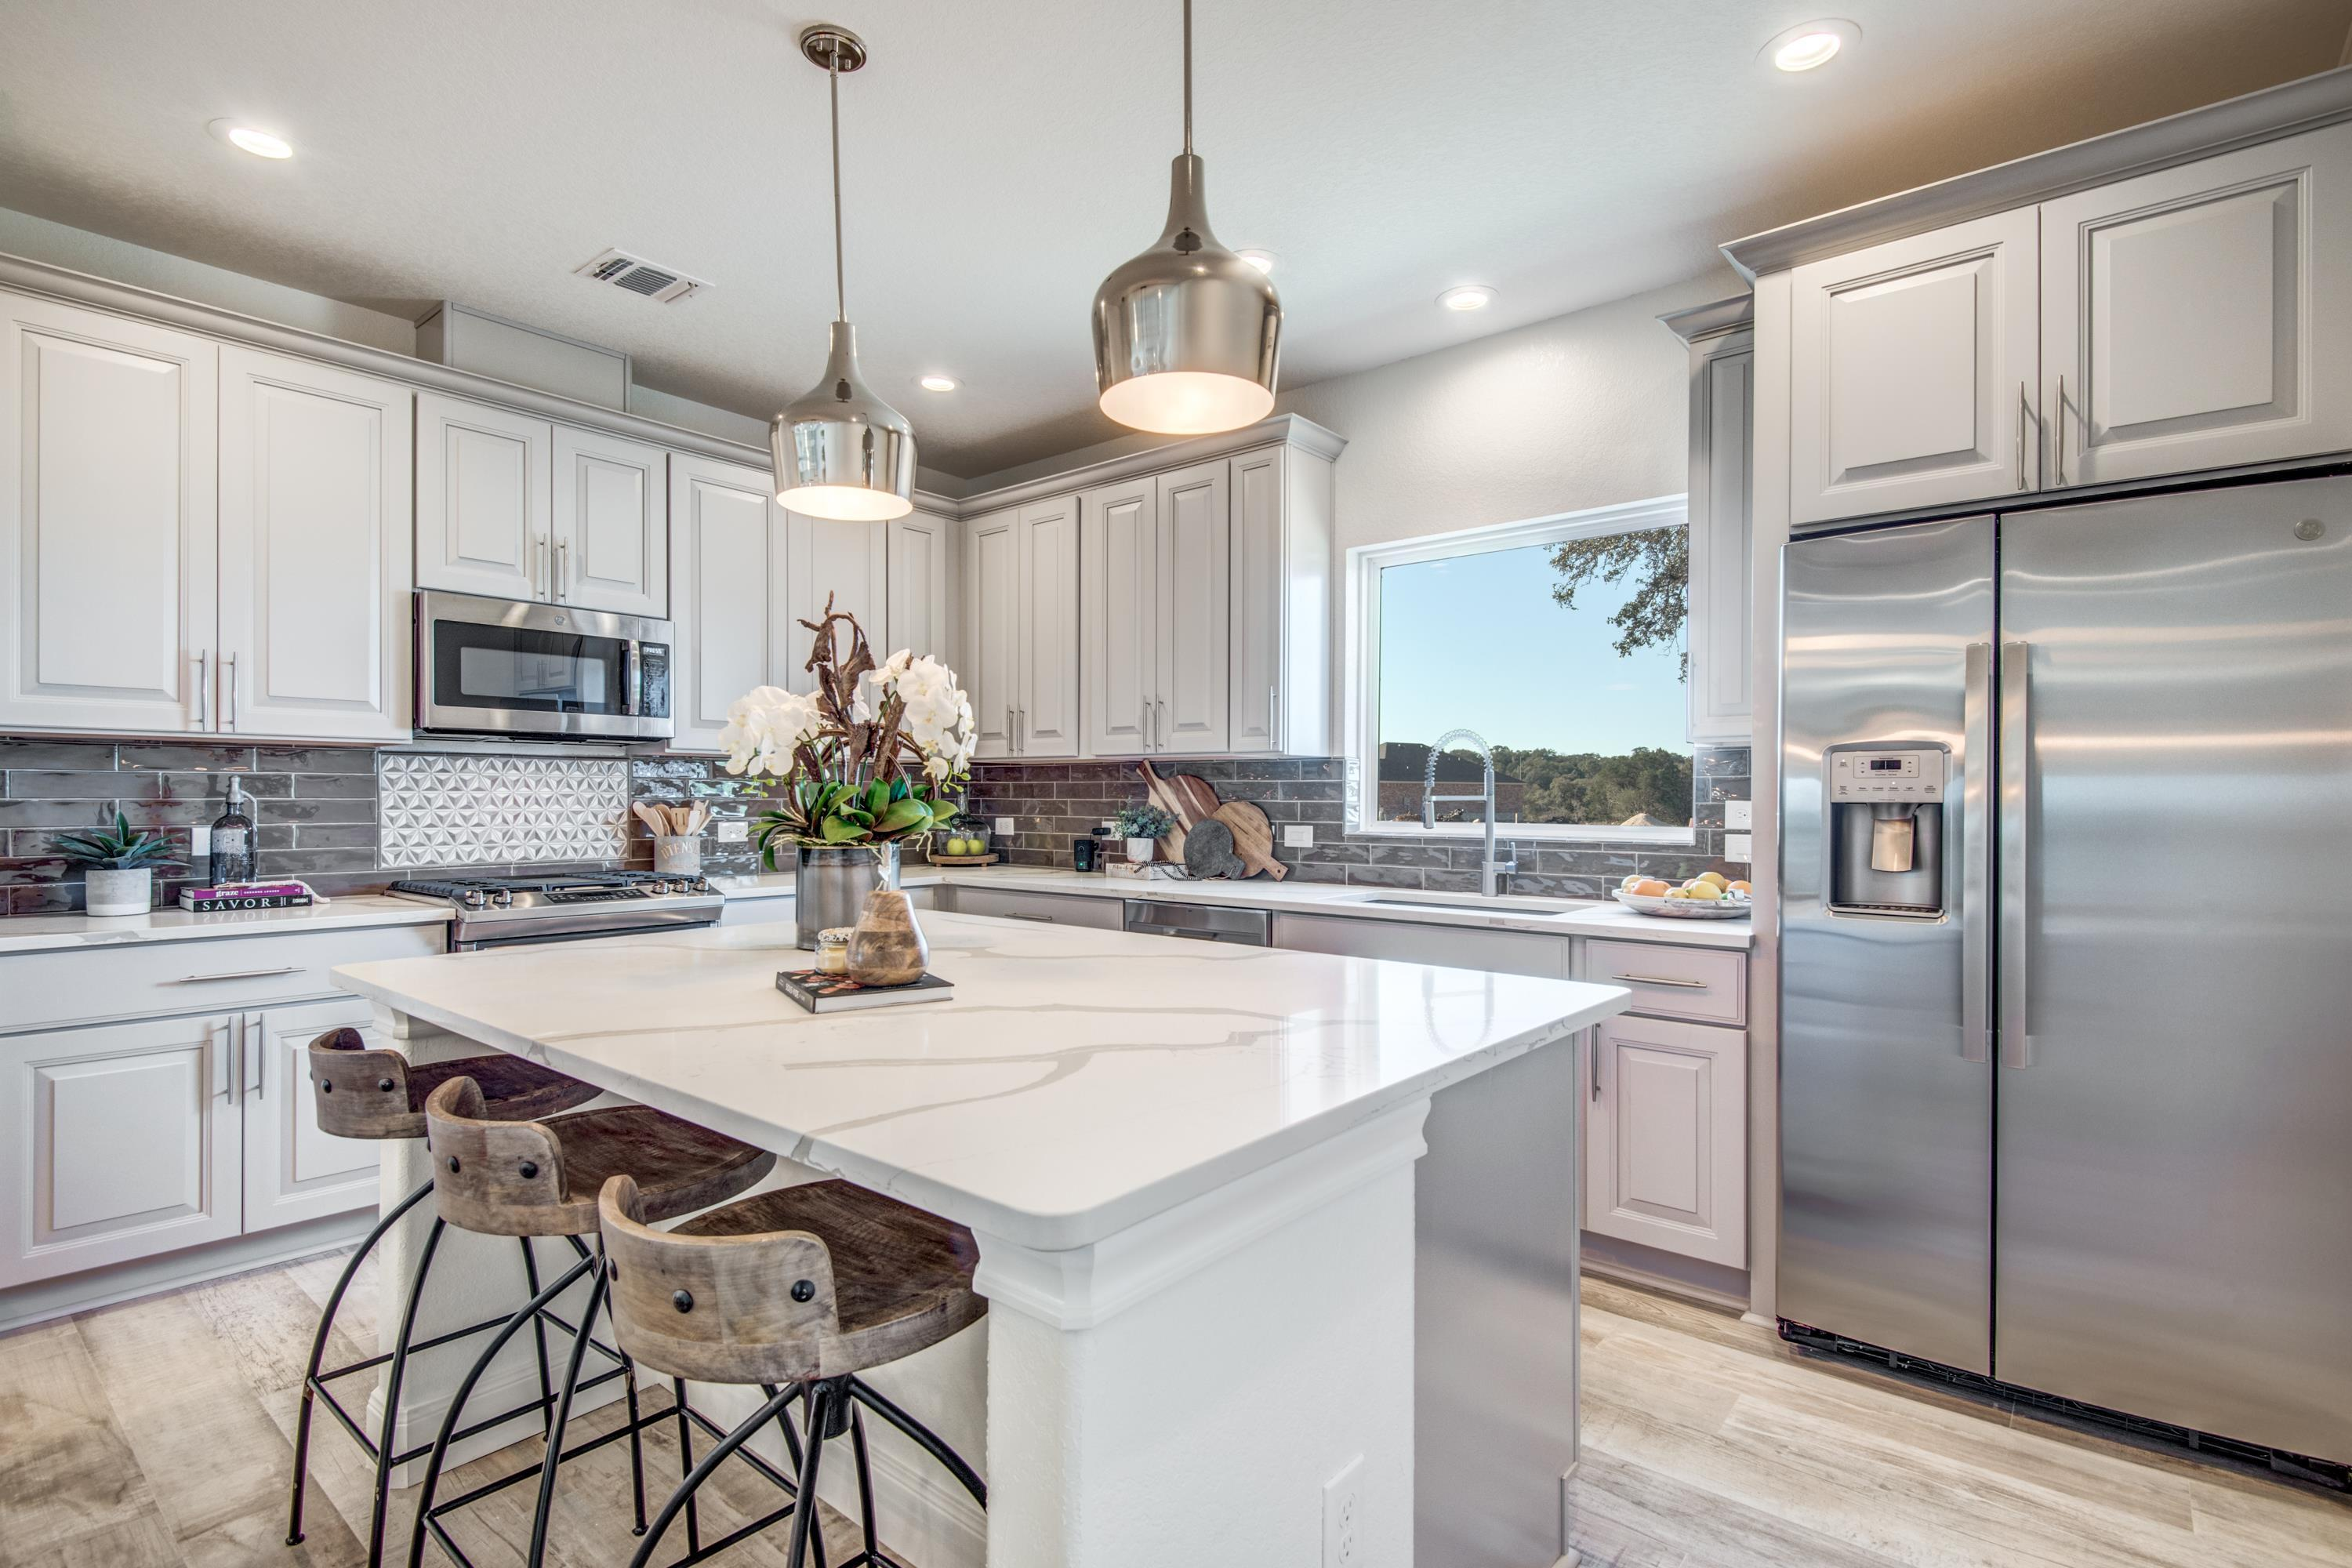 Kitchen featured in The Beaufort II By JuEll Homes in San Antonio, TX